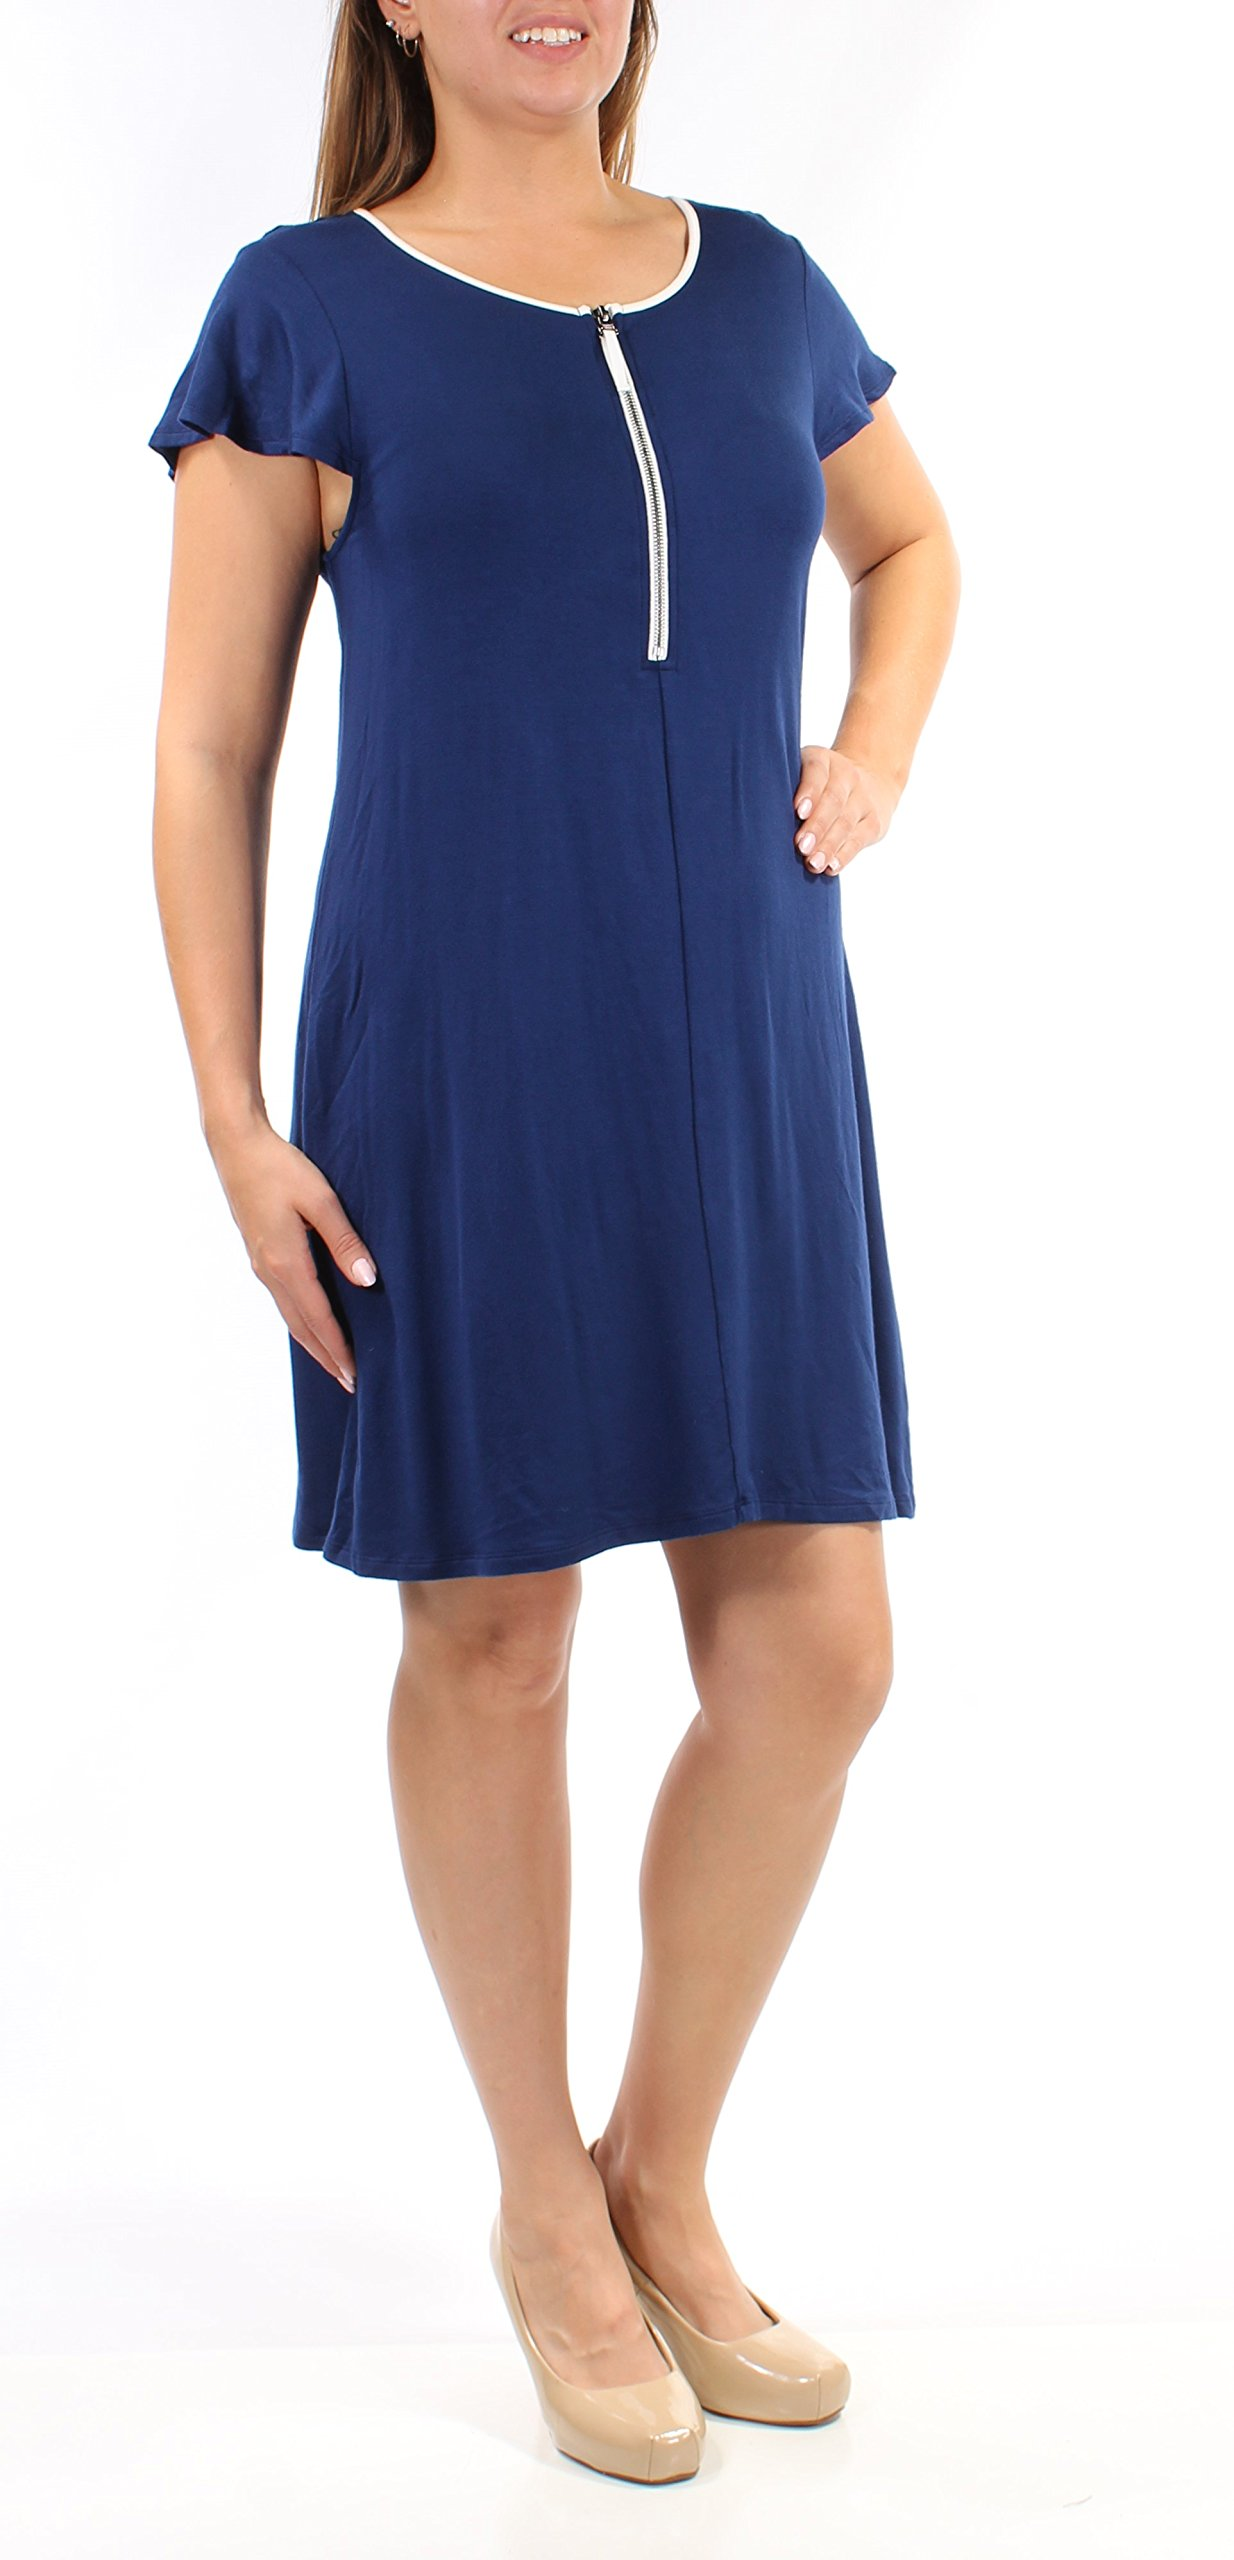 Available at Amazon: kensie Zip-Detail T-Shirt Dress Blue Size XXL